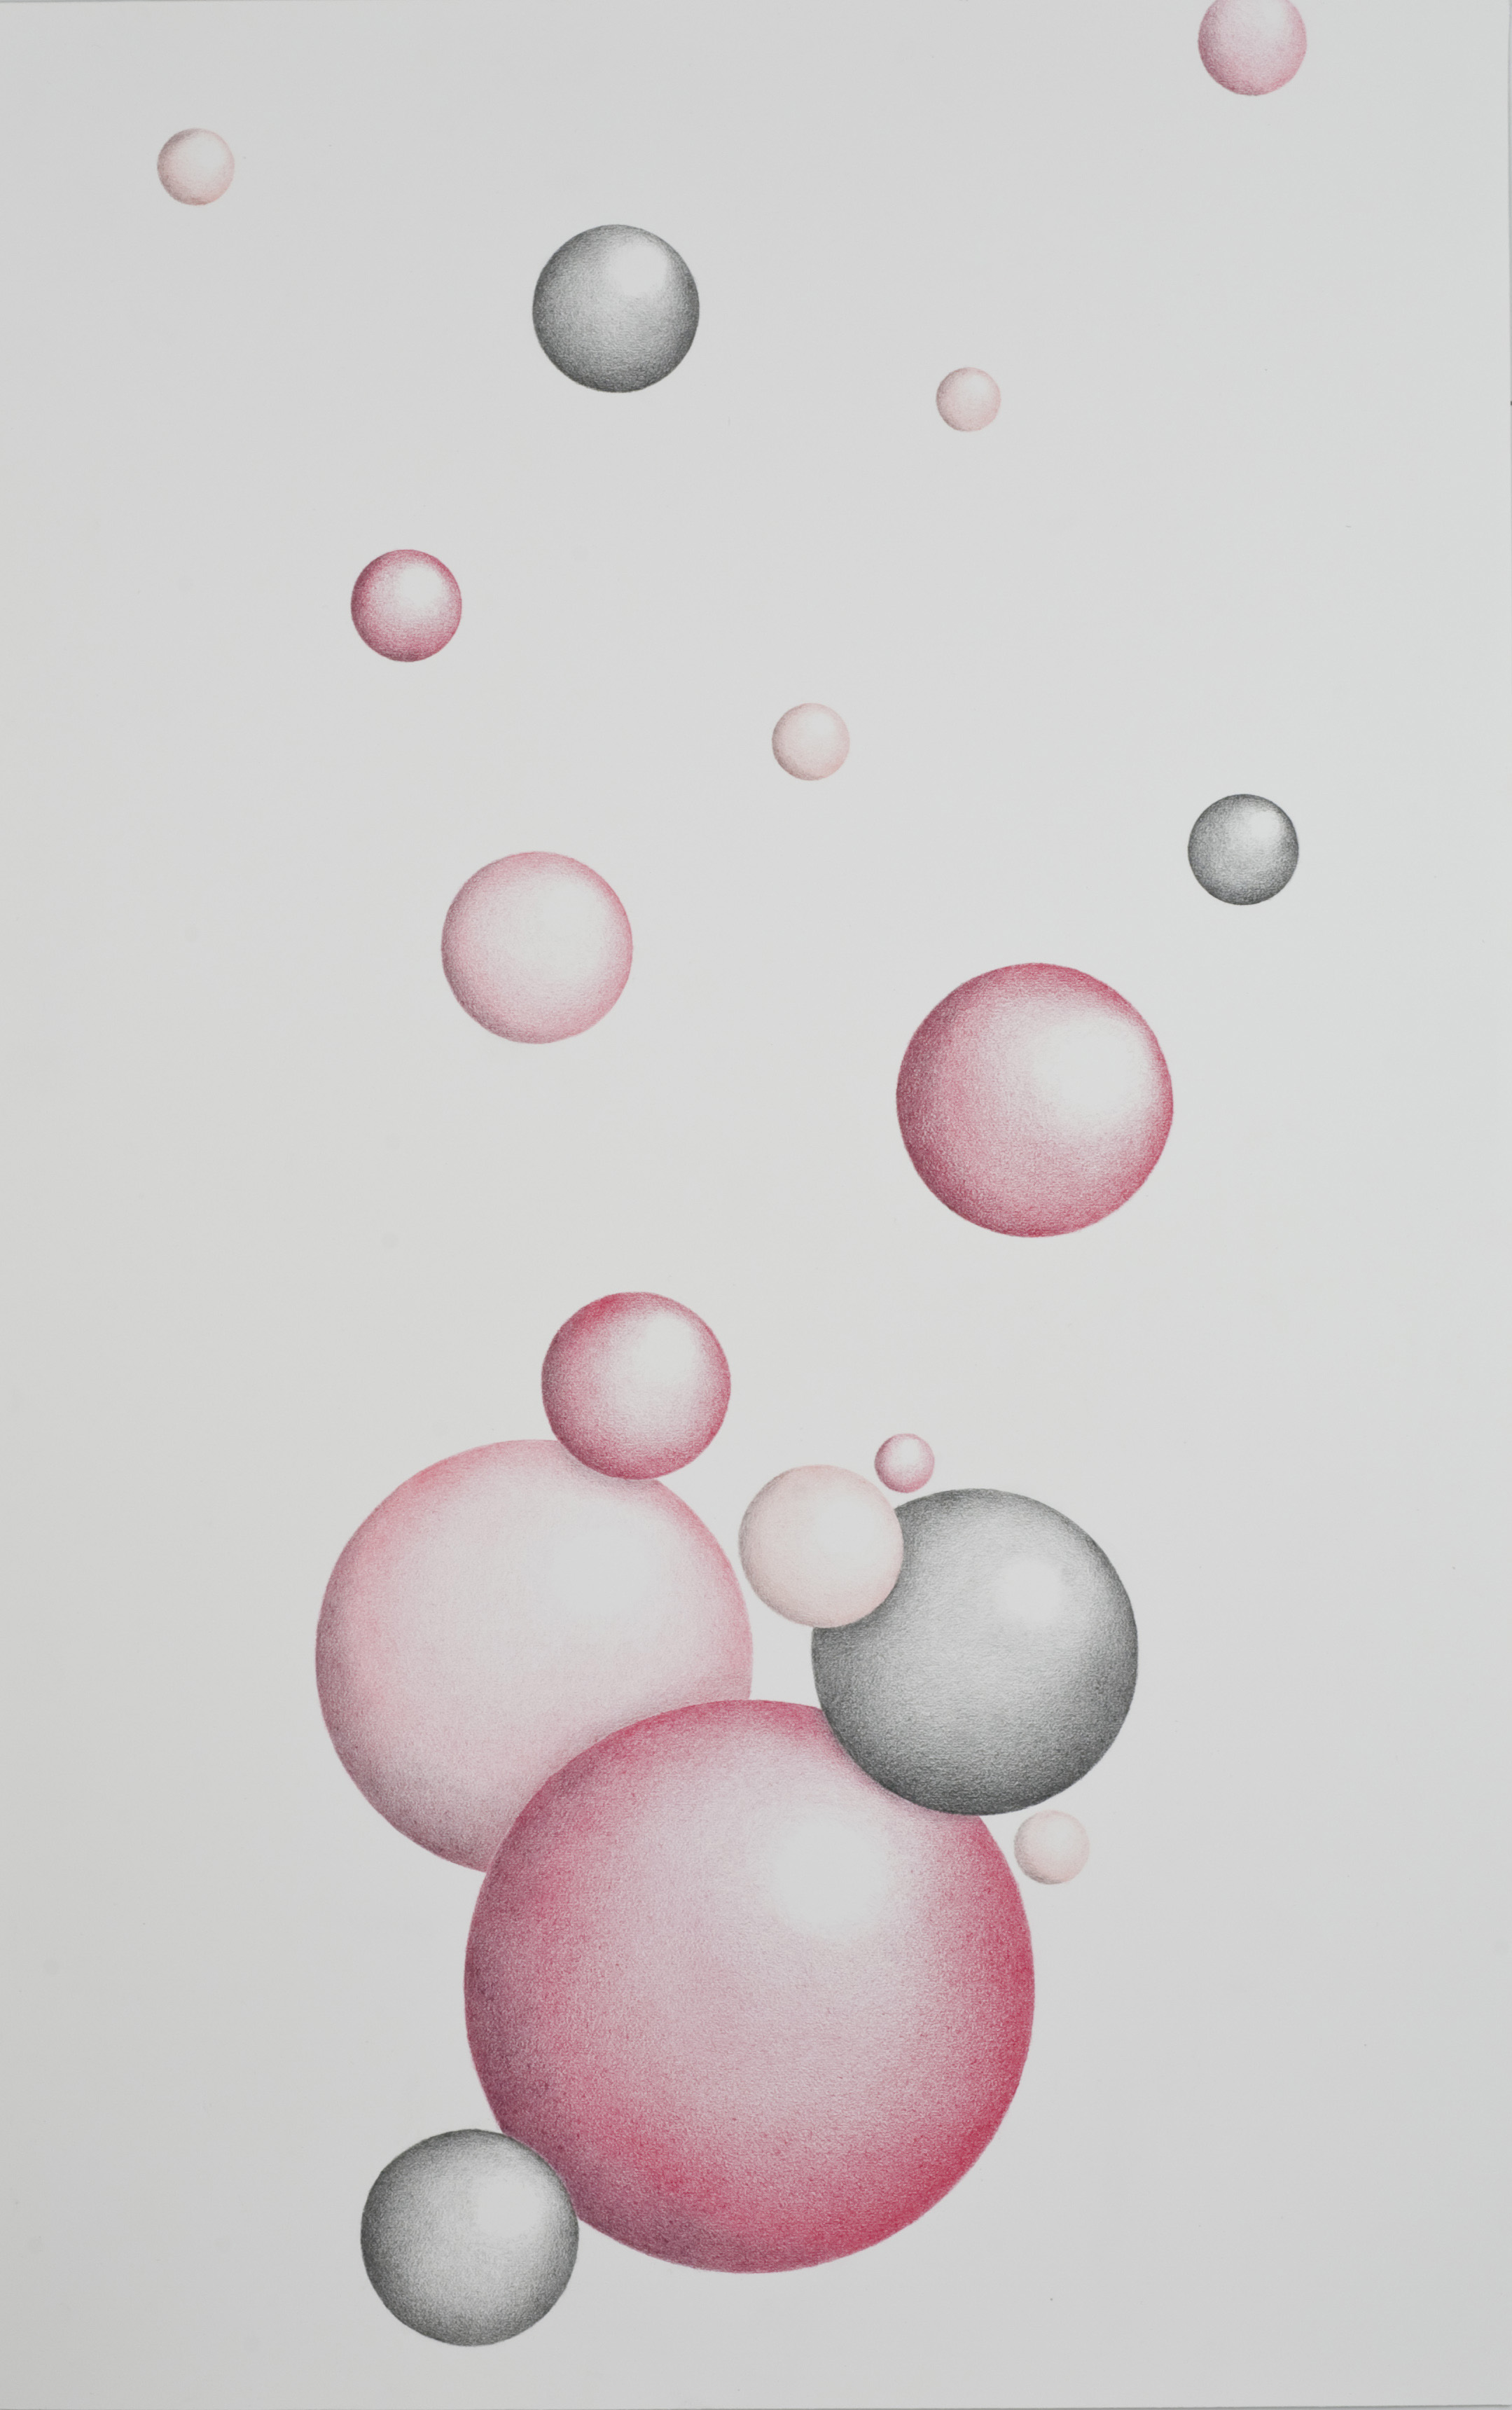 Bubble Drawing #3